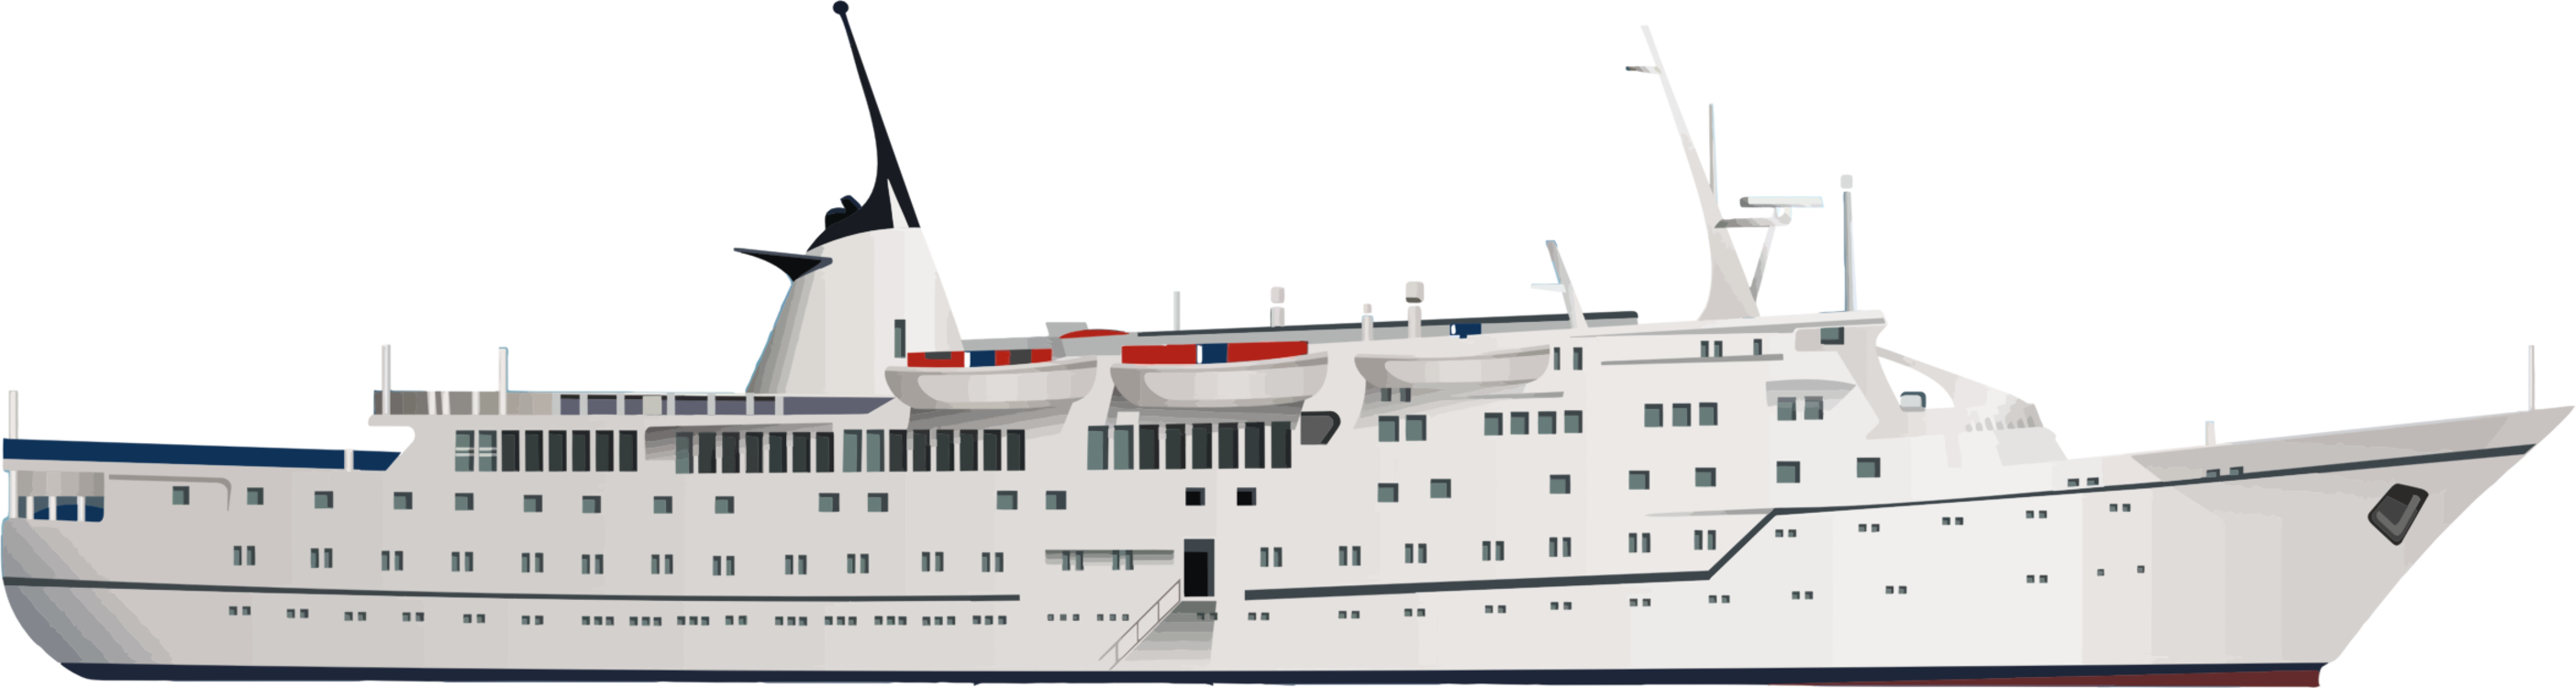 Ferry cruise ship ocean. Yacht png water transportation image library download